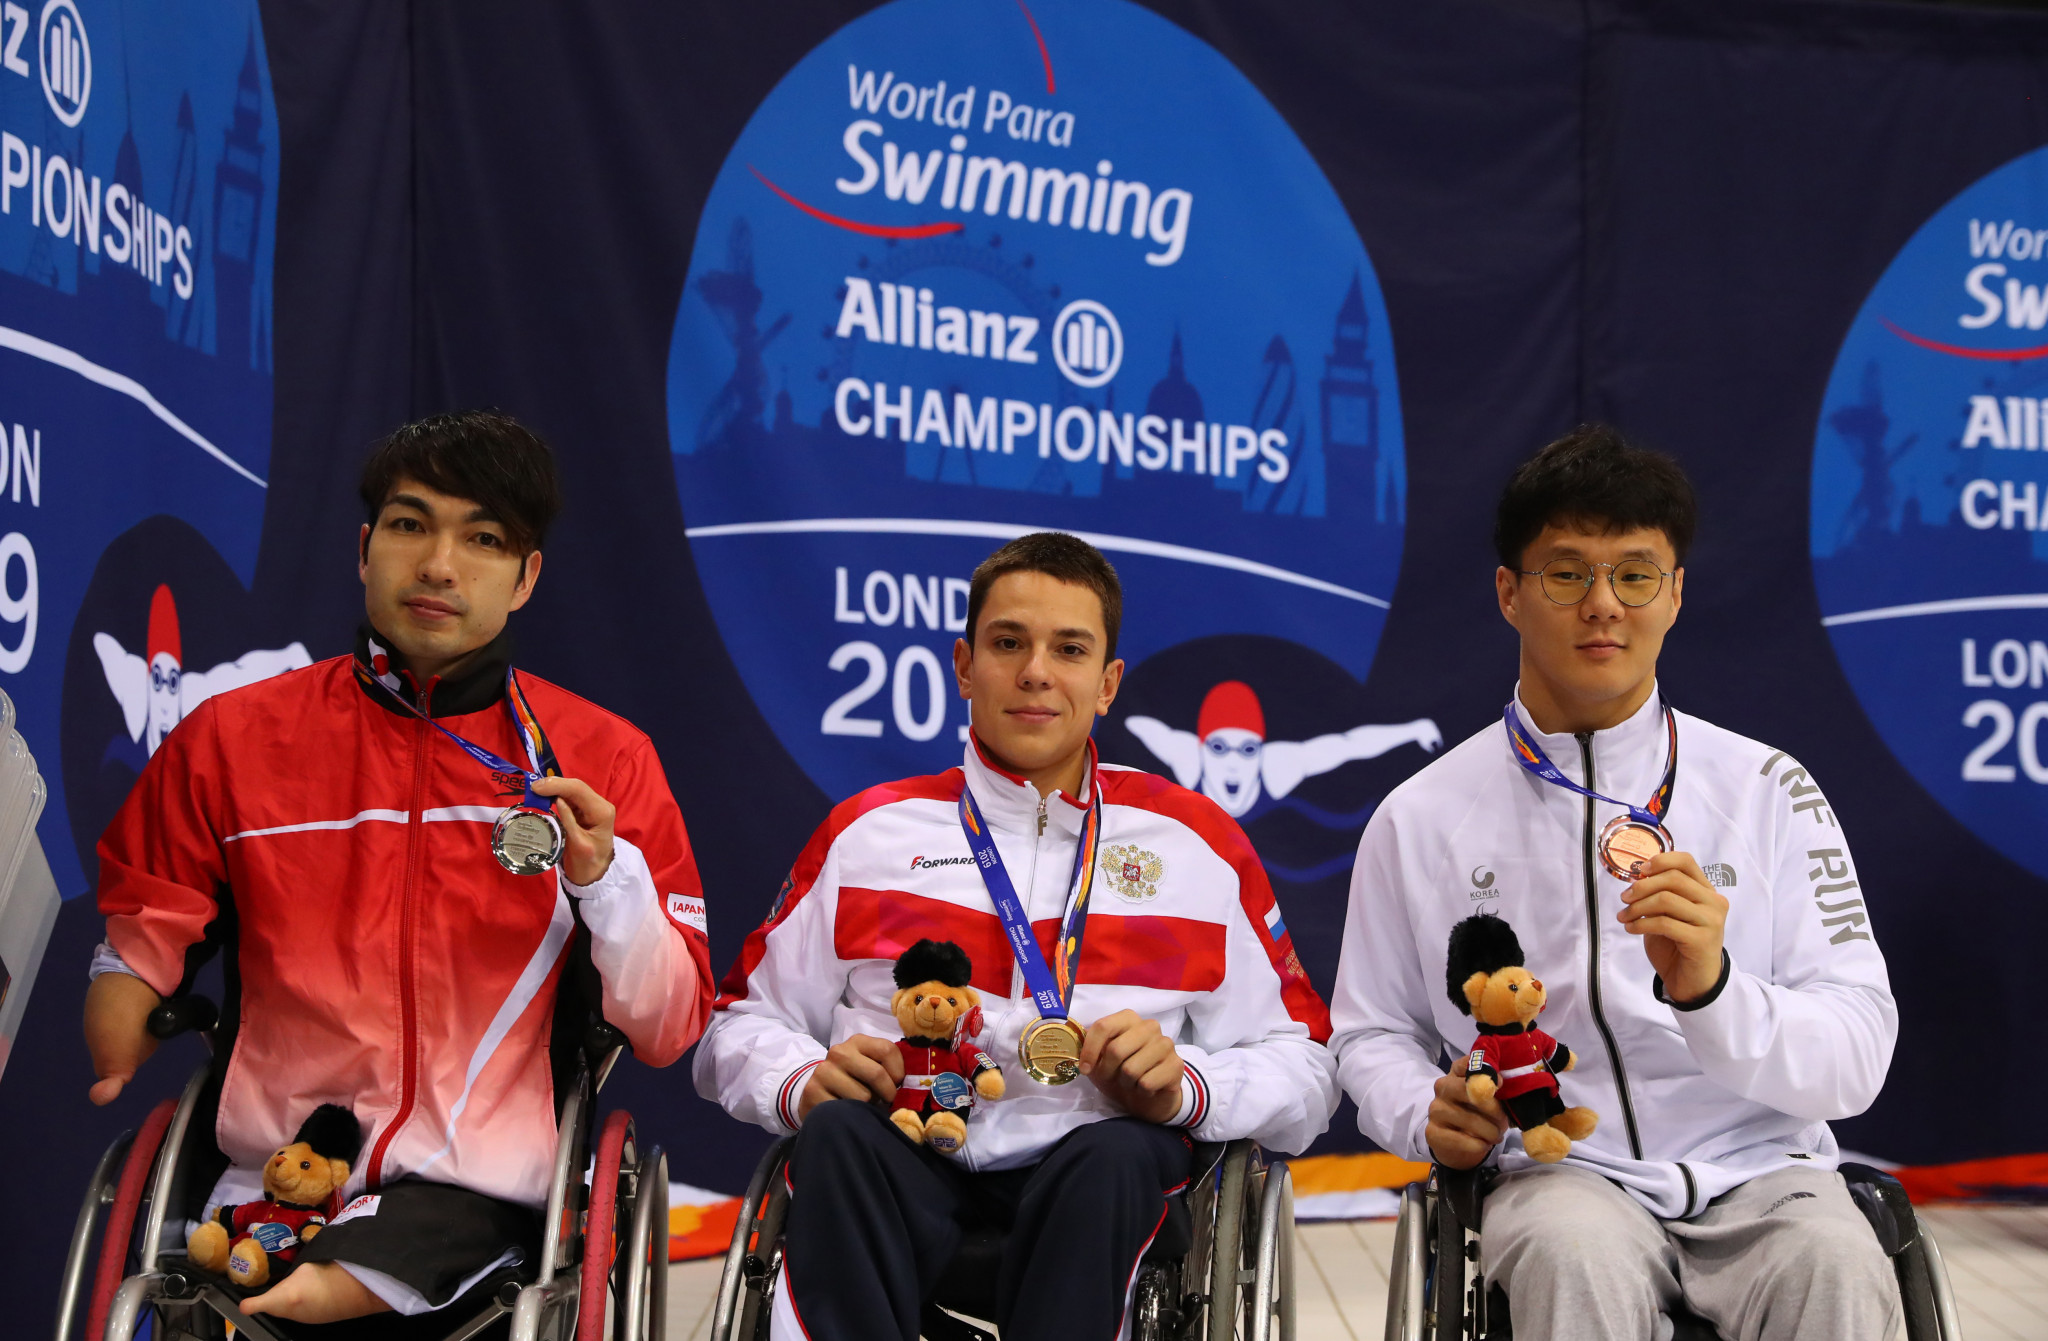 Roman Zhdanov, centre, also won three gold medals at the World Para Swimming Championships in London in 2019 ©Getty Images